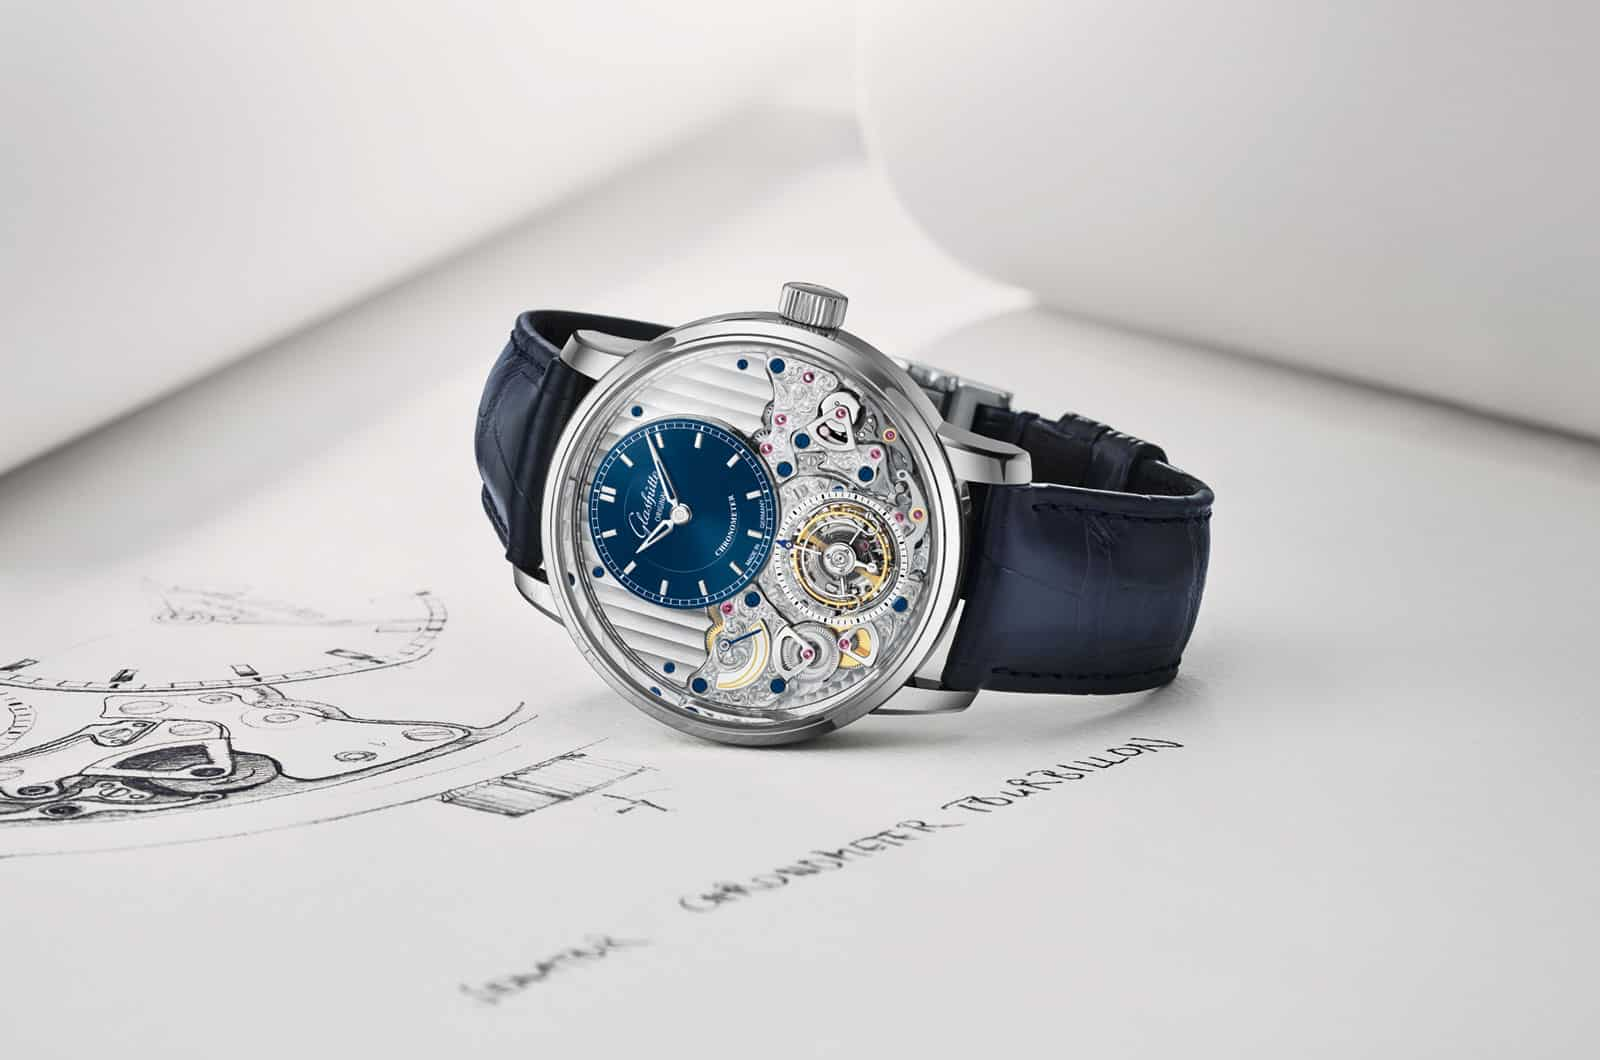 Introducing the new Glashütte Original Senator Chronometer Tourbillon